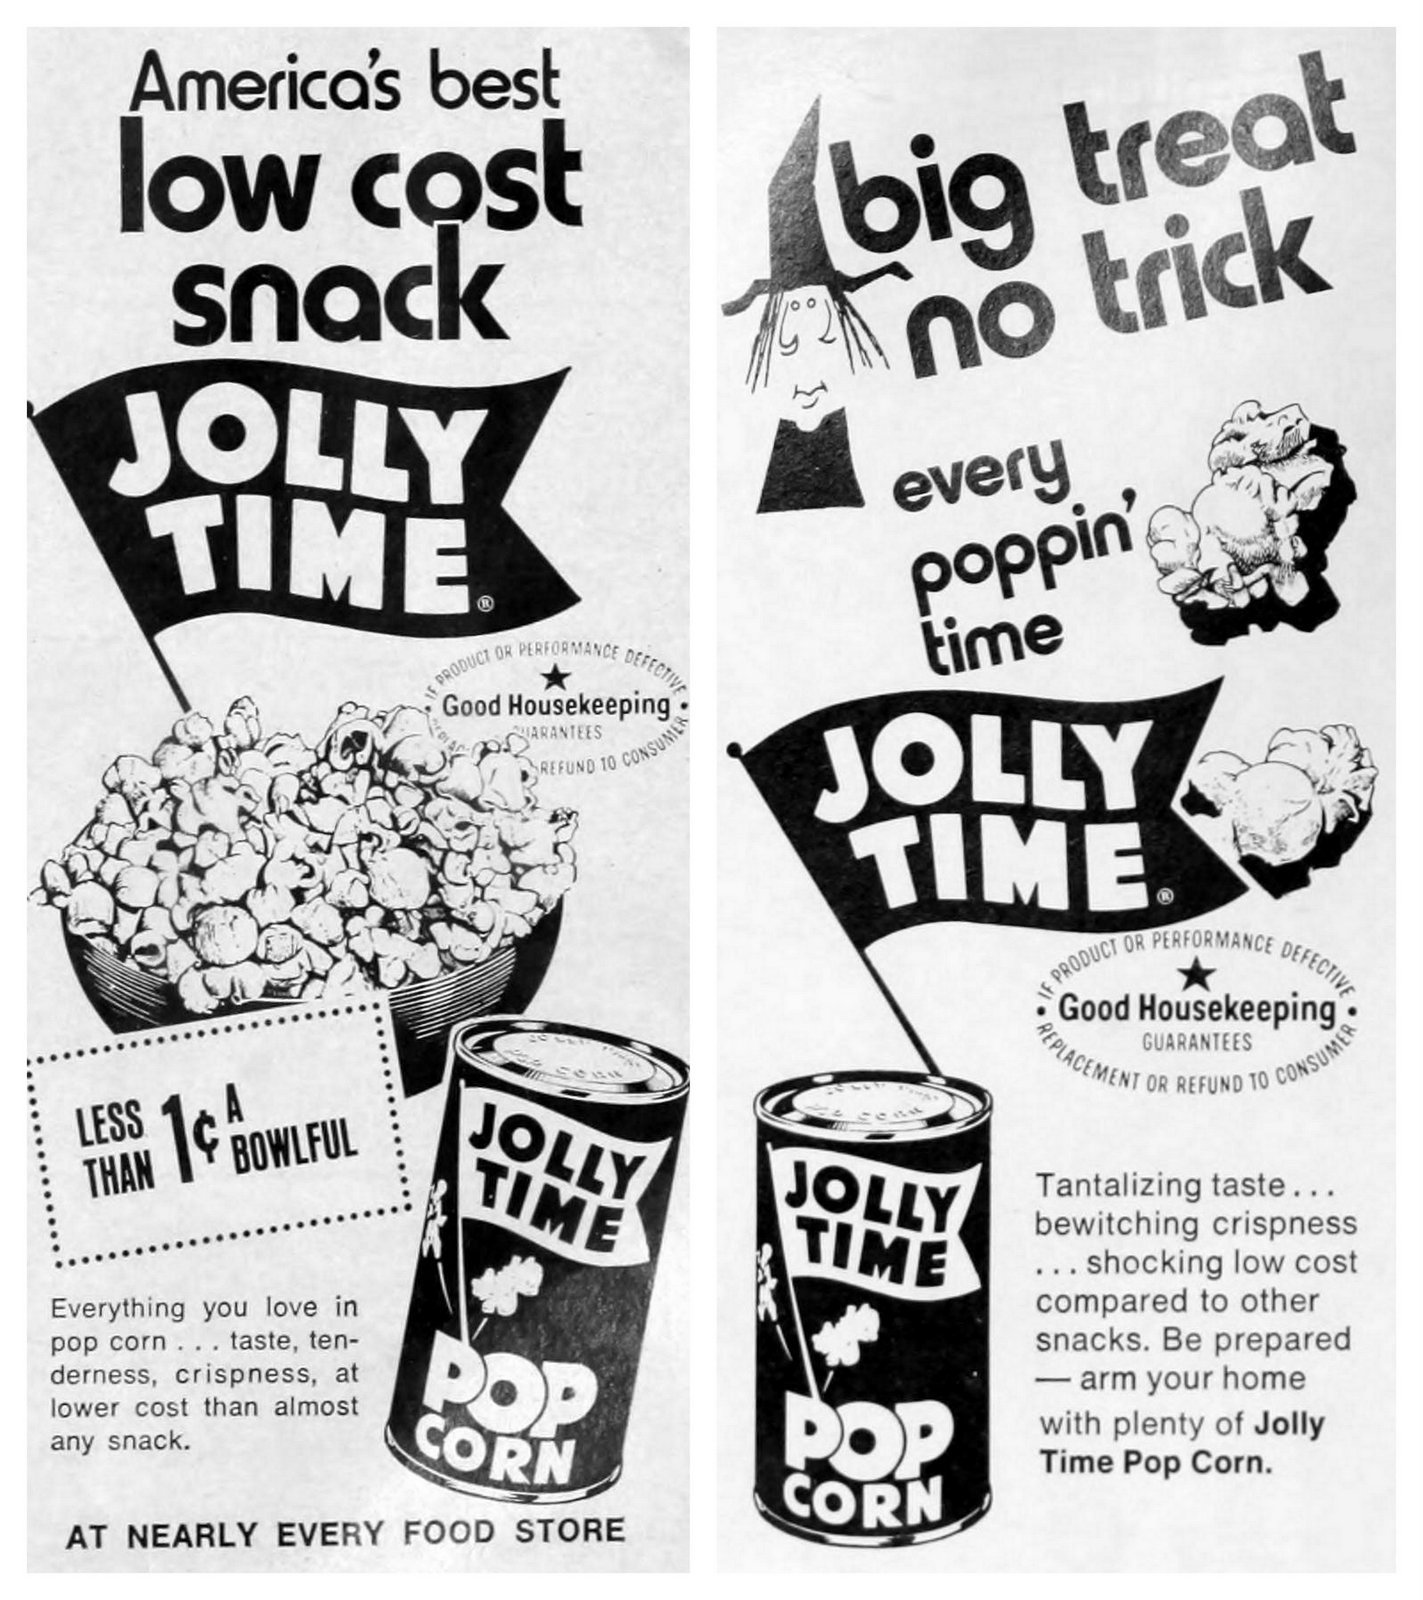 Vintage Jolly Time popcorn ads (early 1970s)